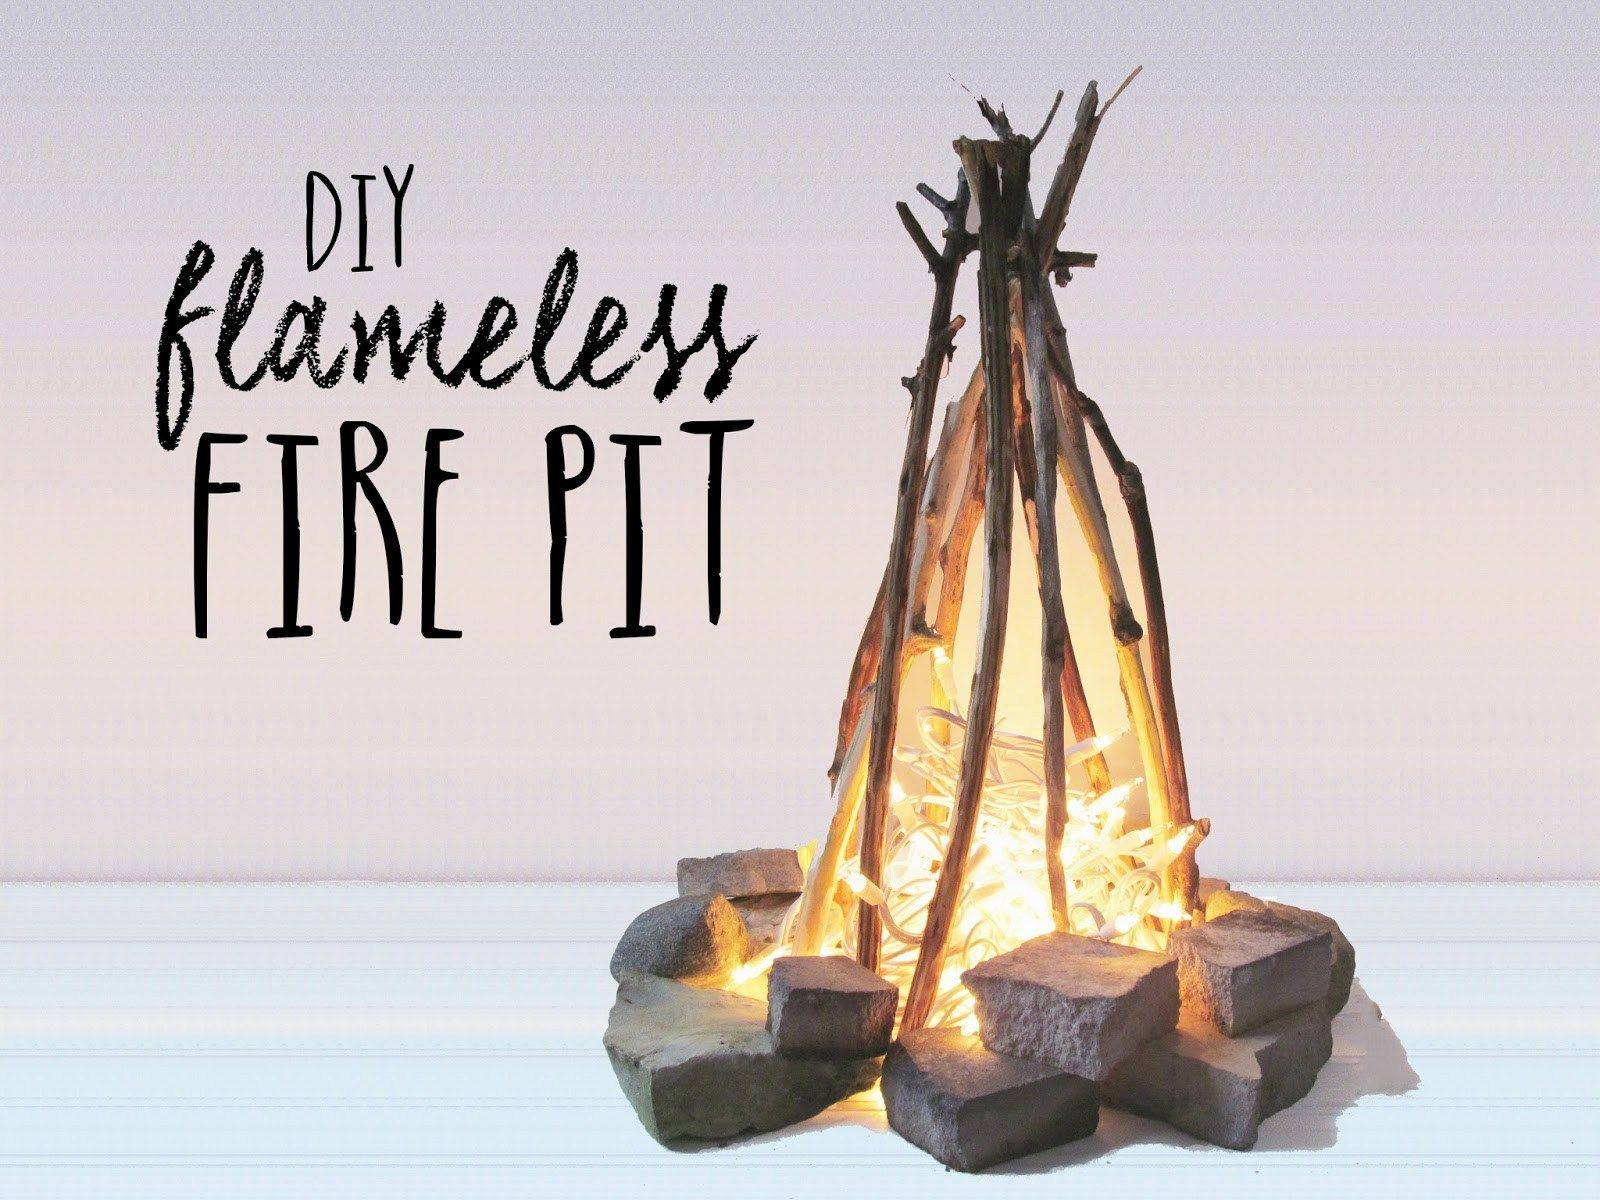 DIY Flameless Fire Pit Pinterest